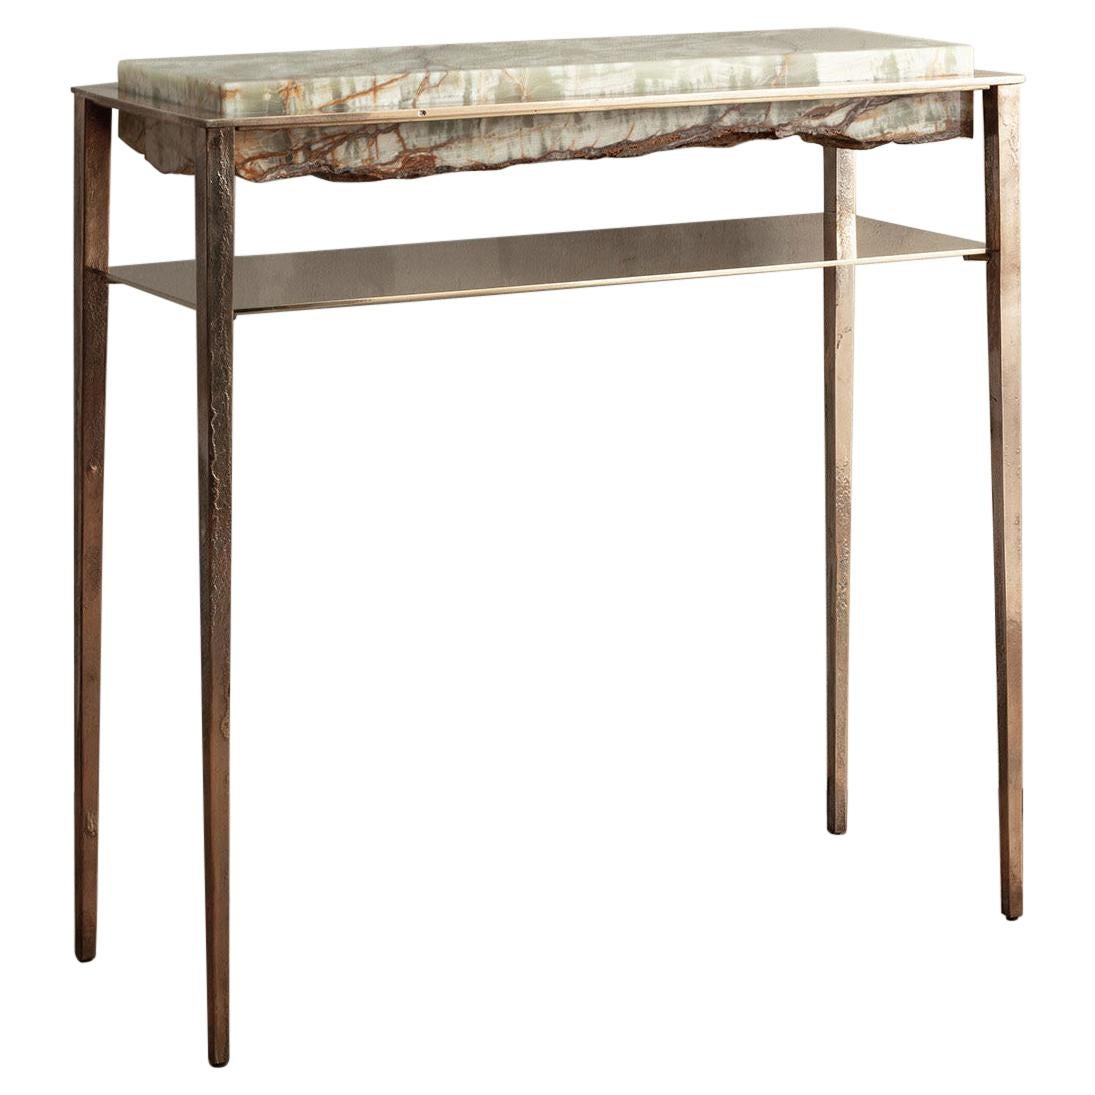 Cremino Green Onyx Console Handcrafted by Gianluca Pacchioni